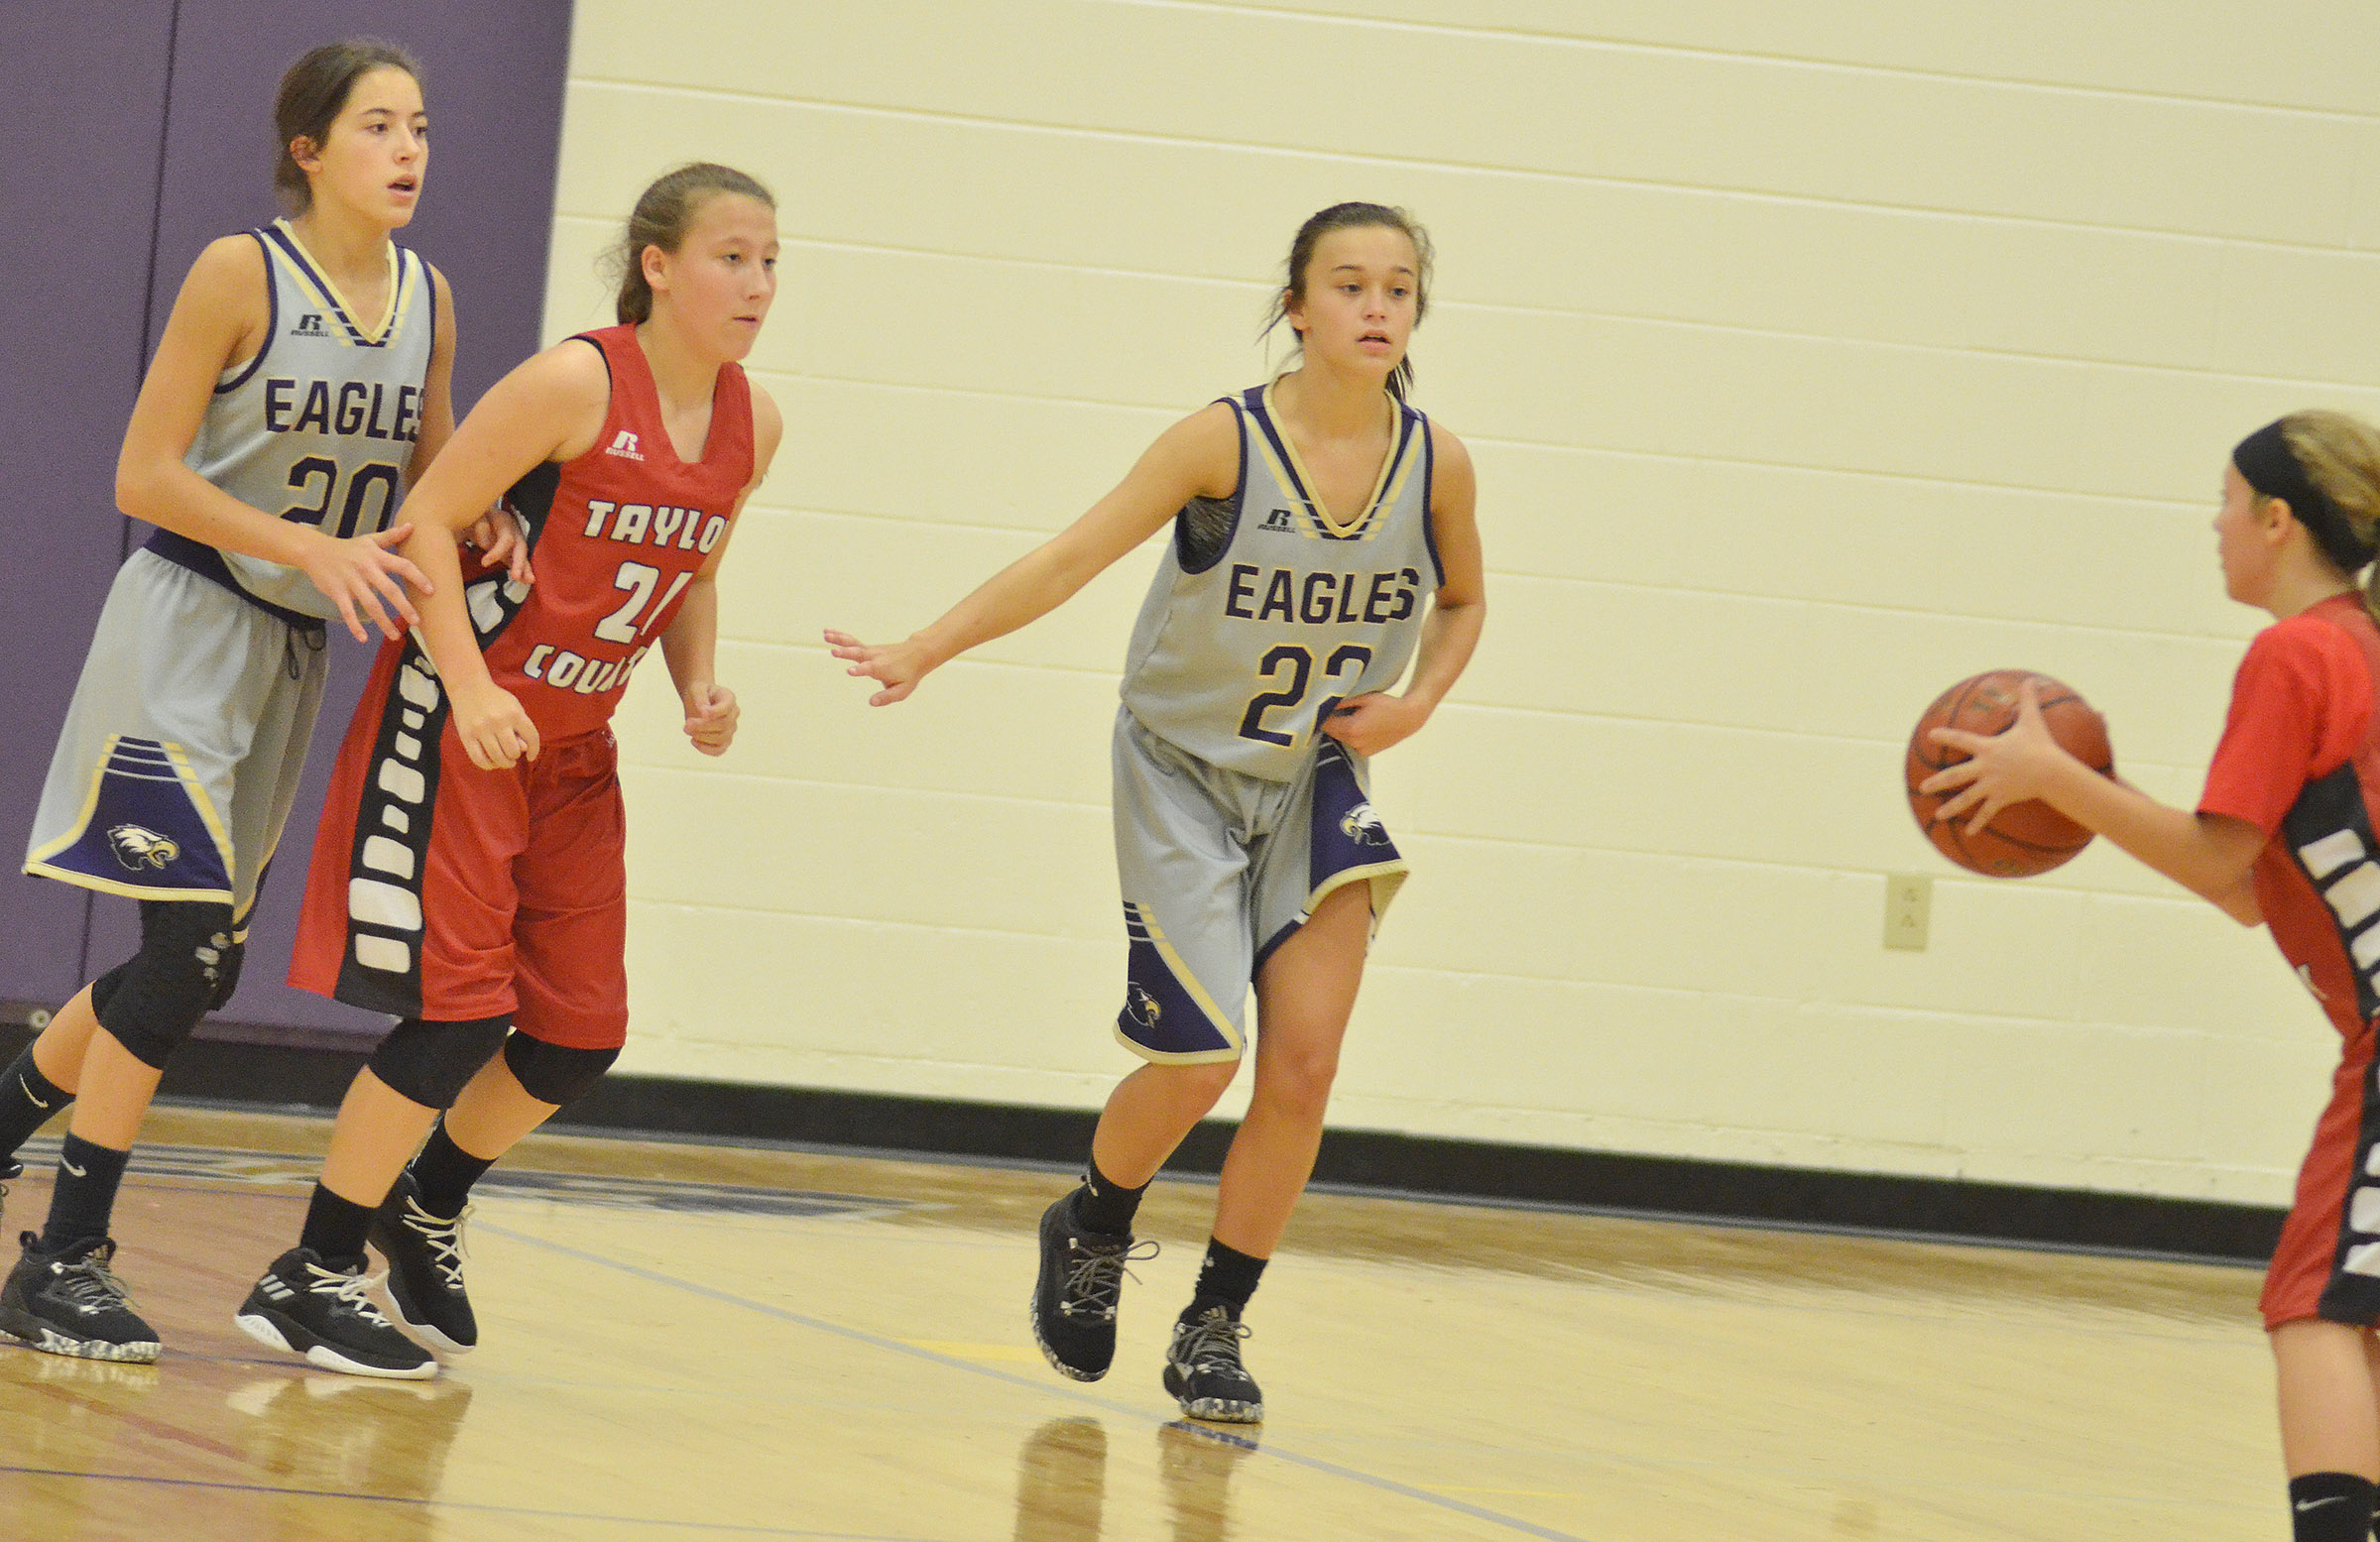 CMS eighth-graders Kaylyn Smith, at left, and Tayler Thompson play defense.